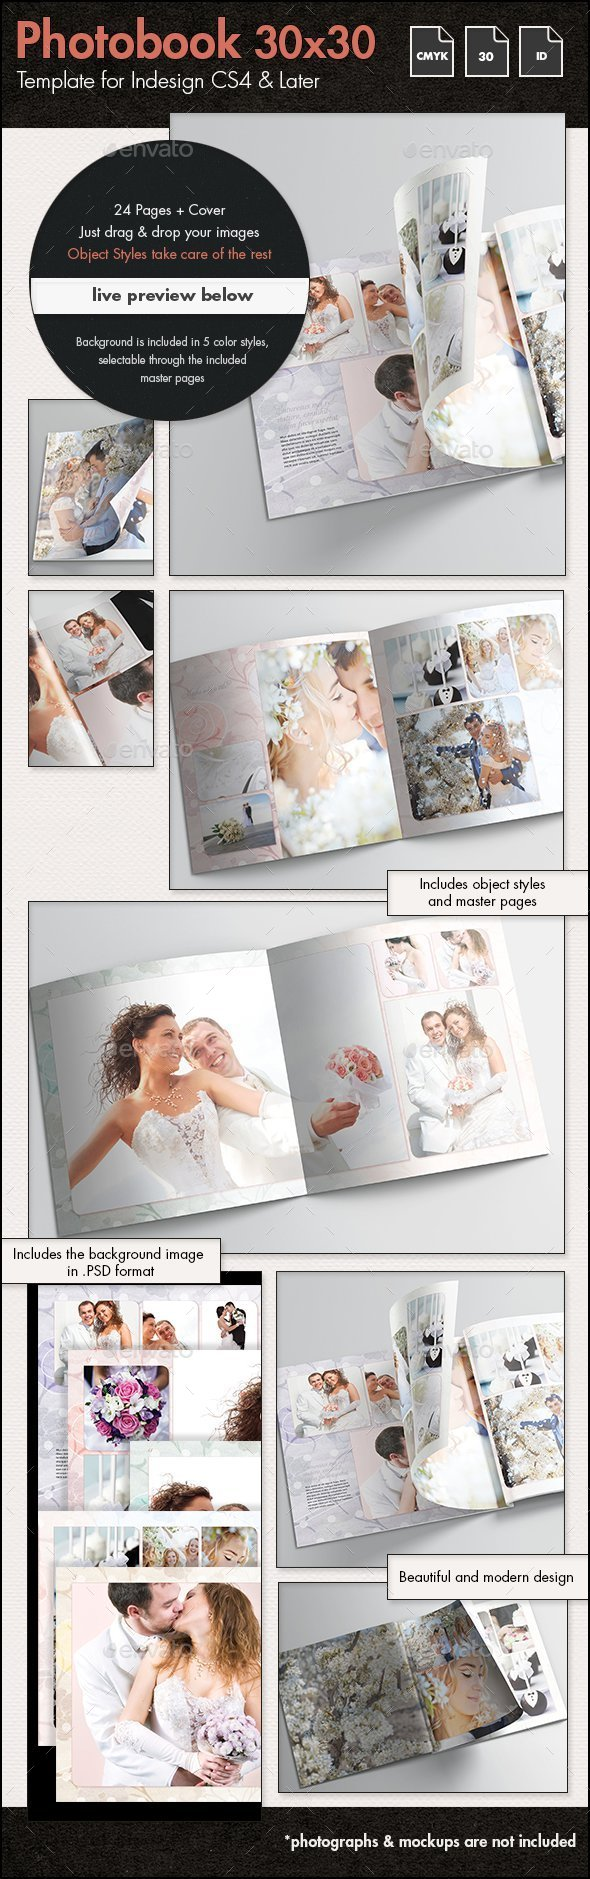 Photobook Wedding Album Template - 30x30cm by sthalassinos ...